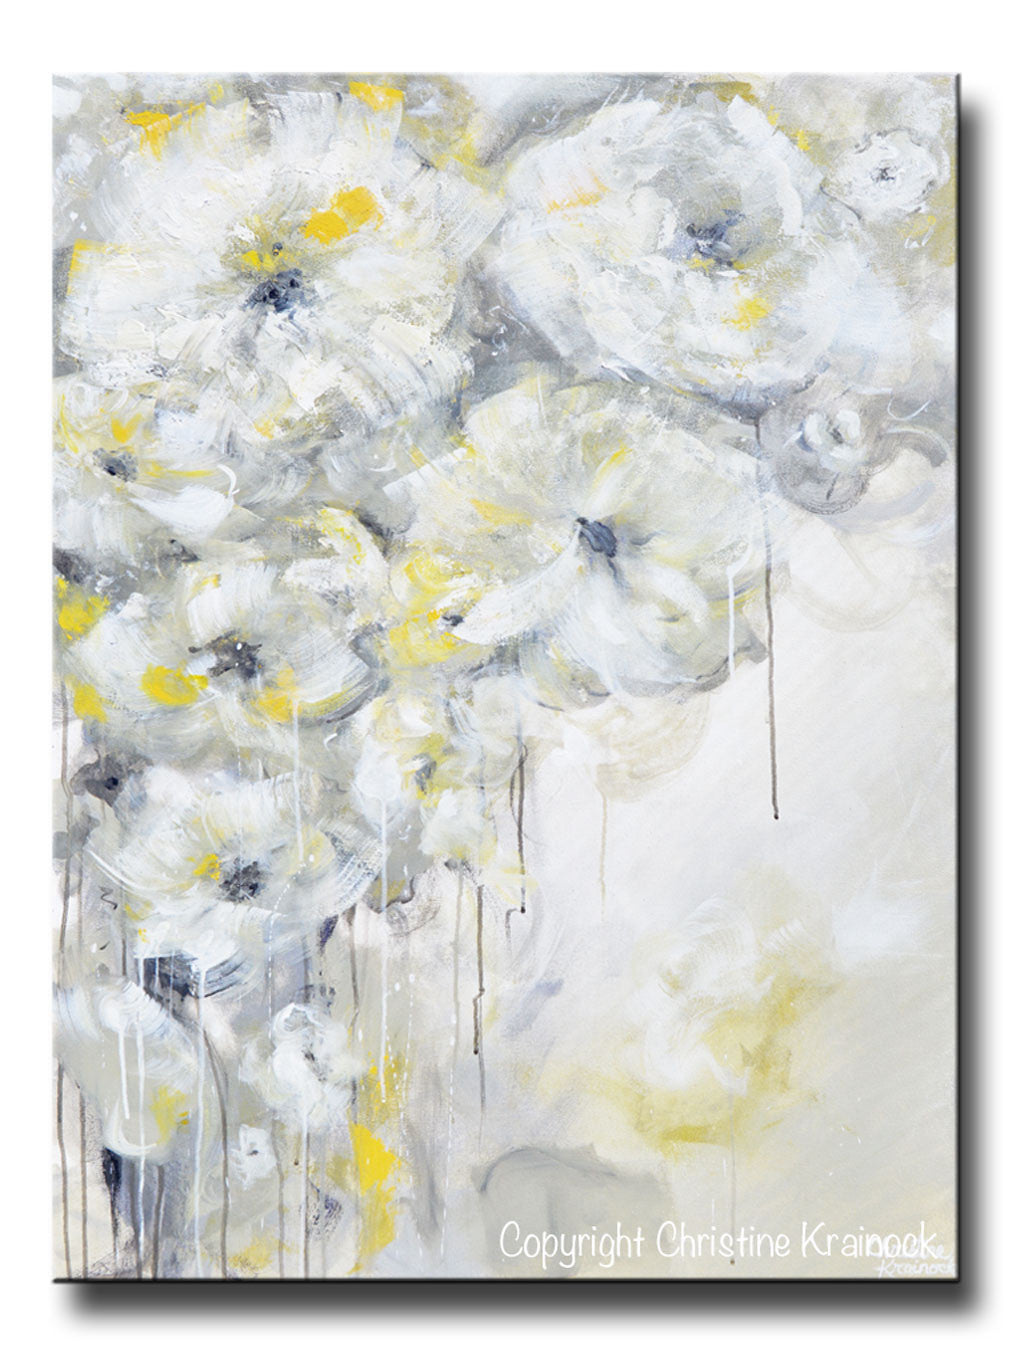 Fine art yellow grey abstract painting white flowers canvas art giclee print art yellow grey abstract painting white flowers modern coastal floral canvas art gold neutral wall decor mightylinksfo